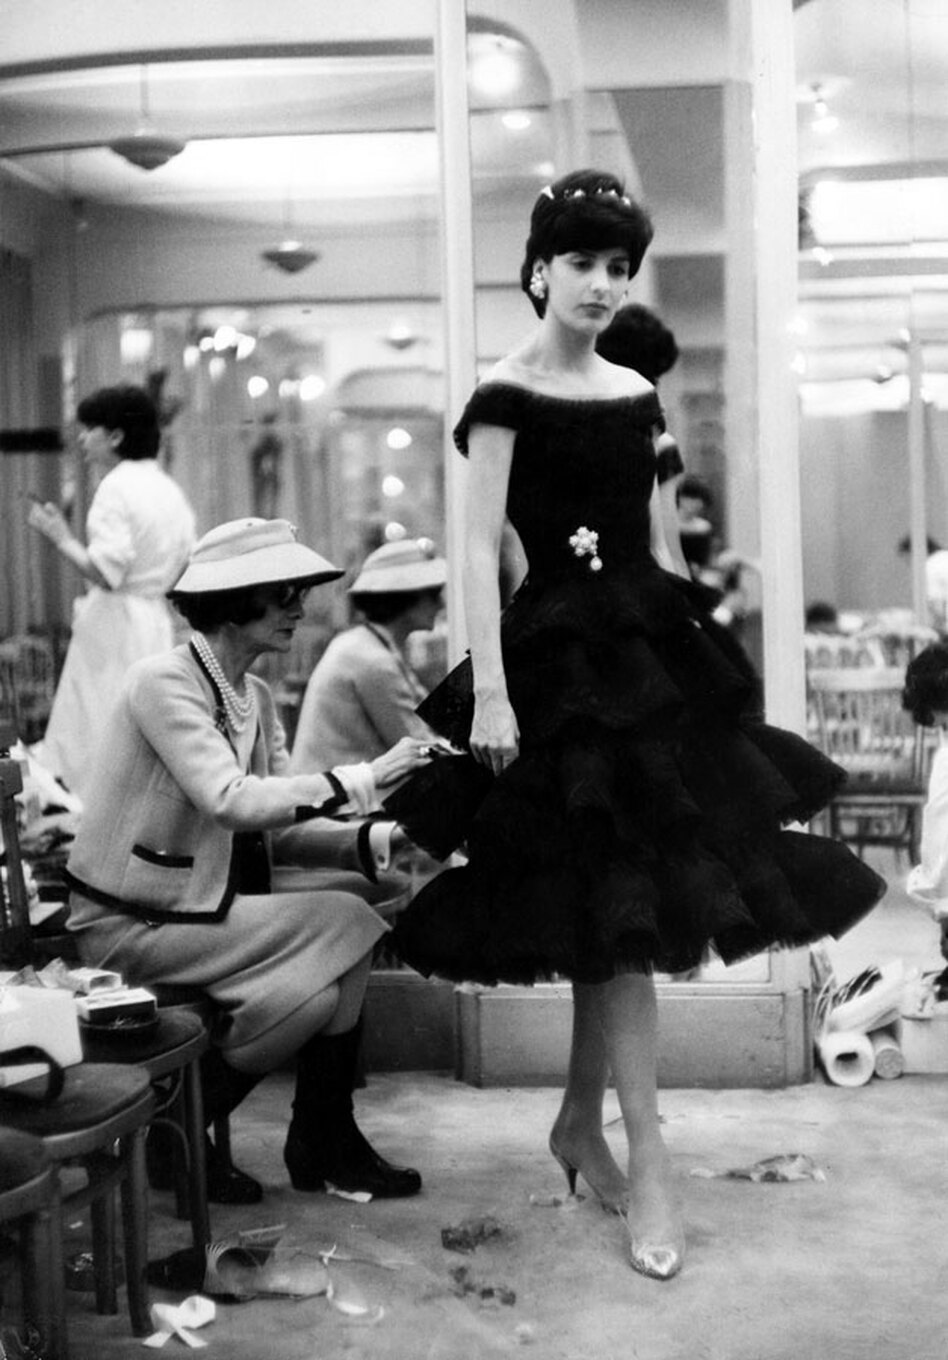 Chanel puts the finishing touches on one of her new designs in 1959.